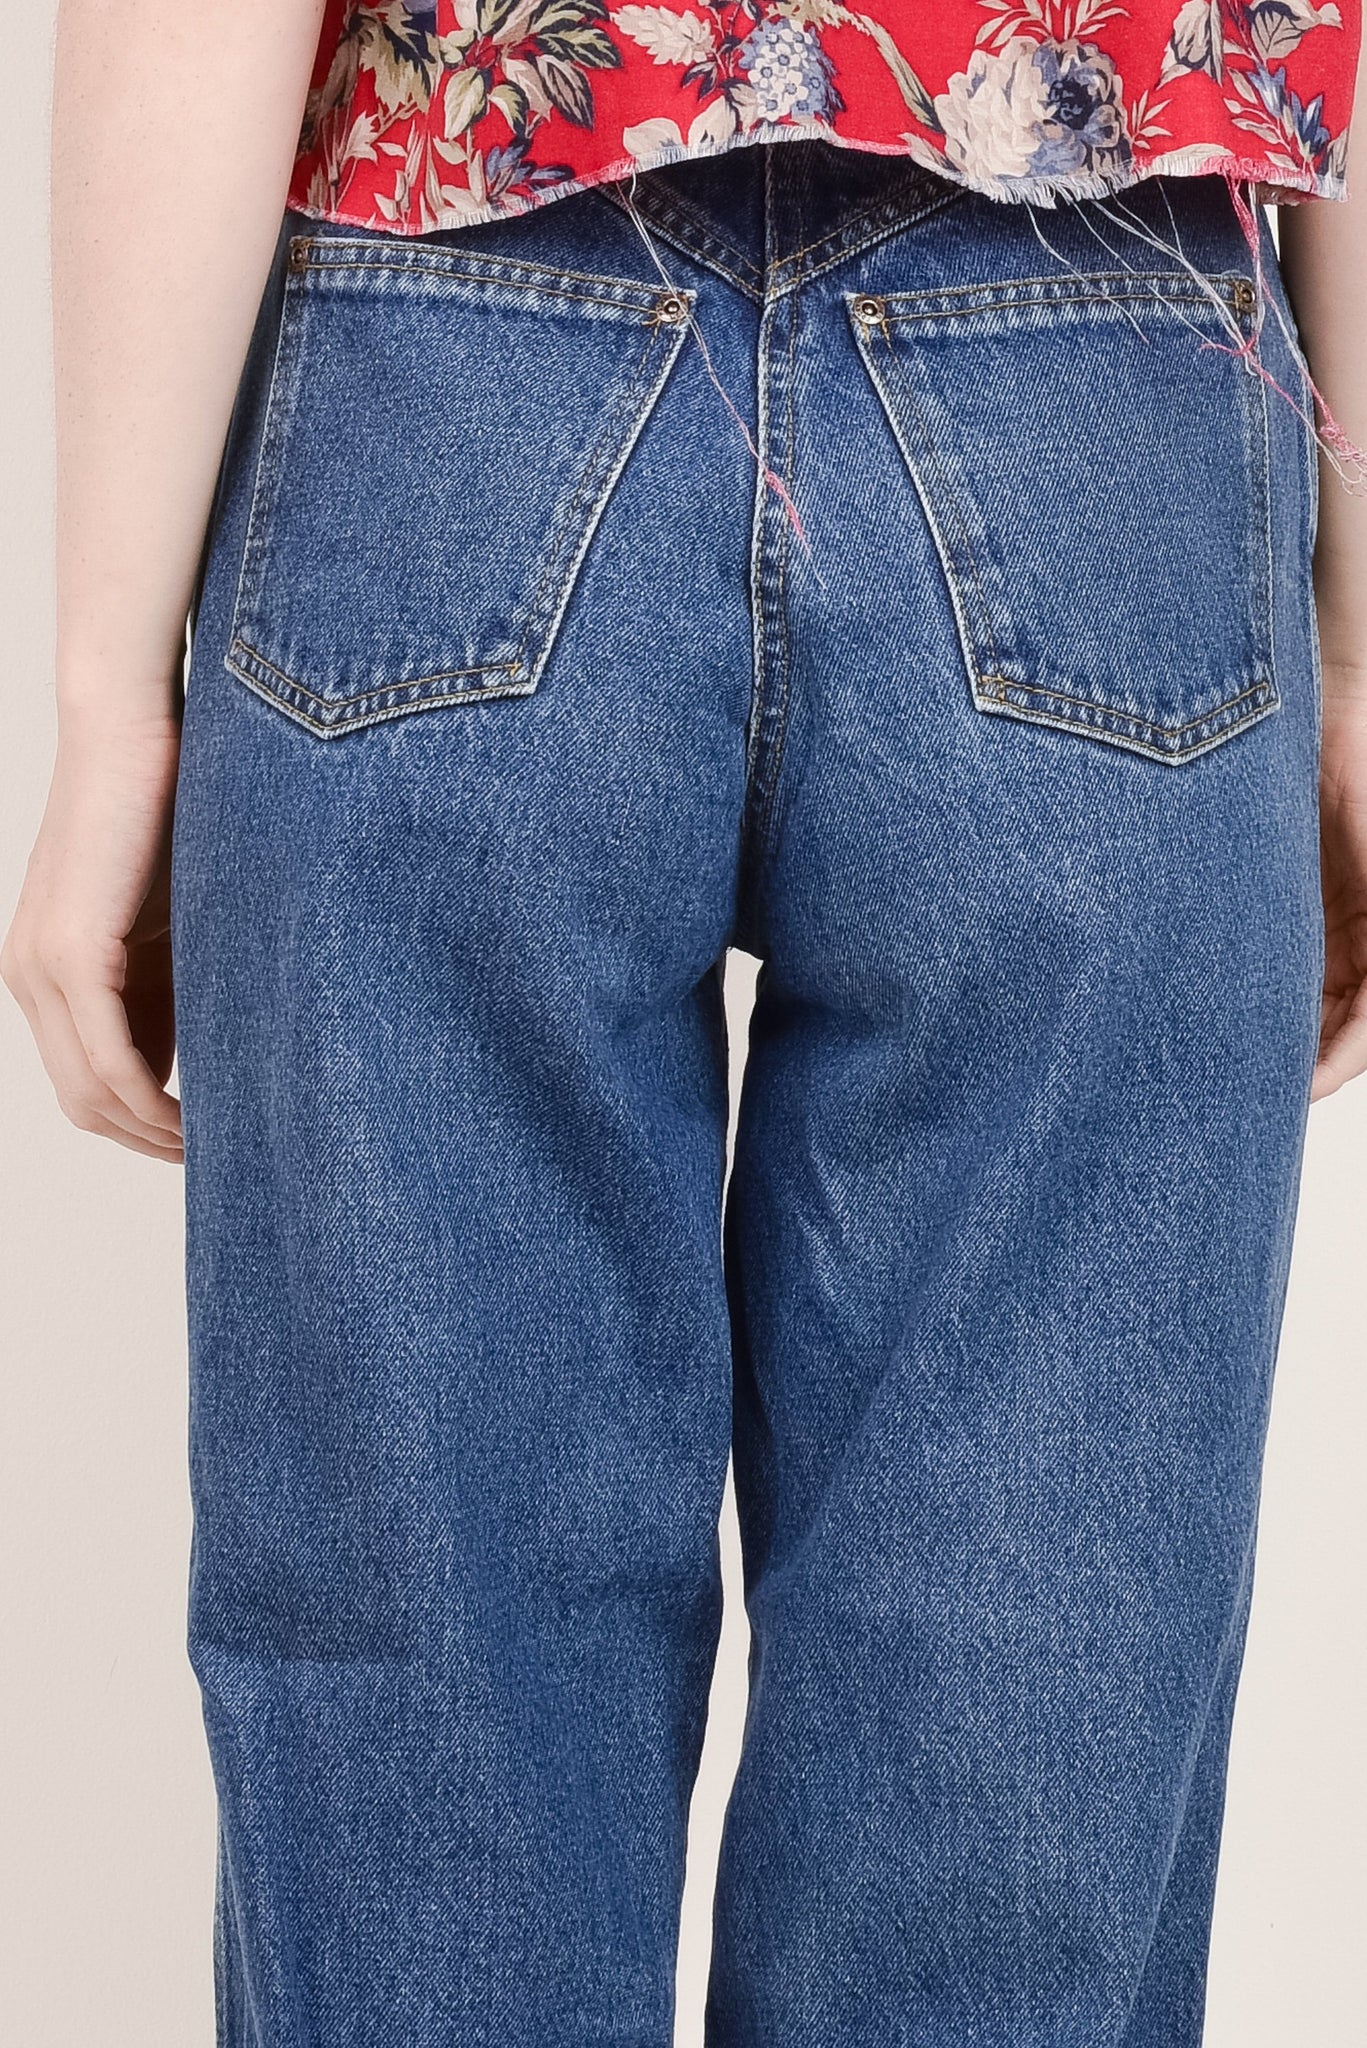 Vintage Medium Wash High Rise ROCKY MOUNTAIN Denim Pants  / S